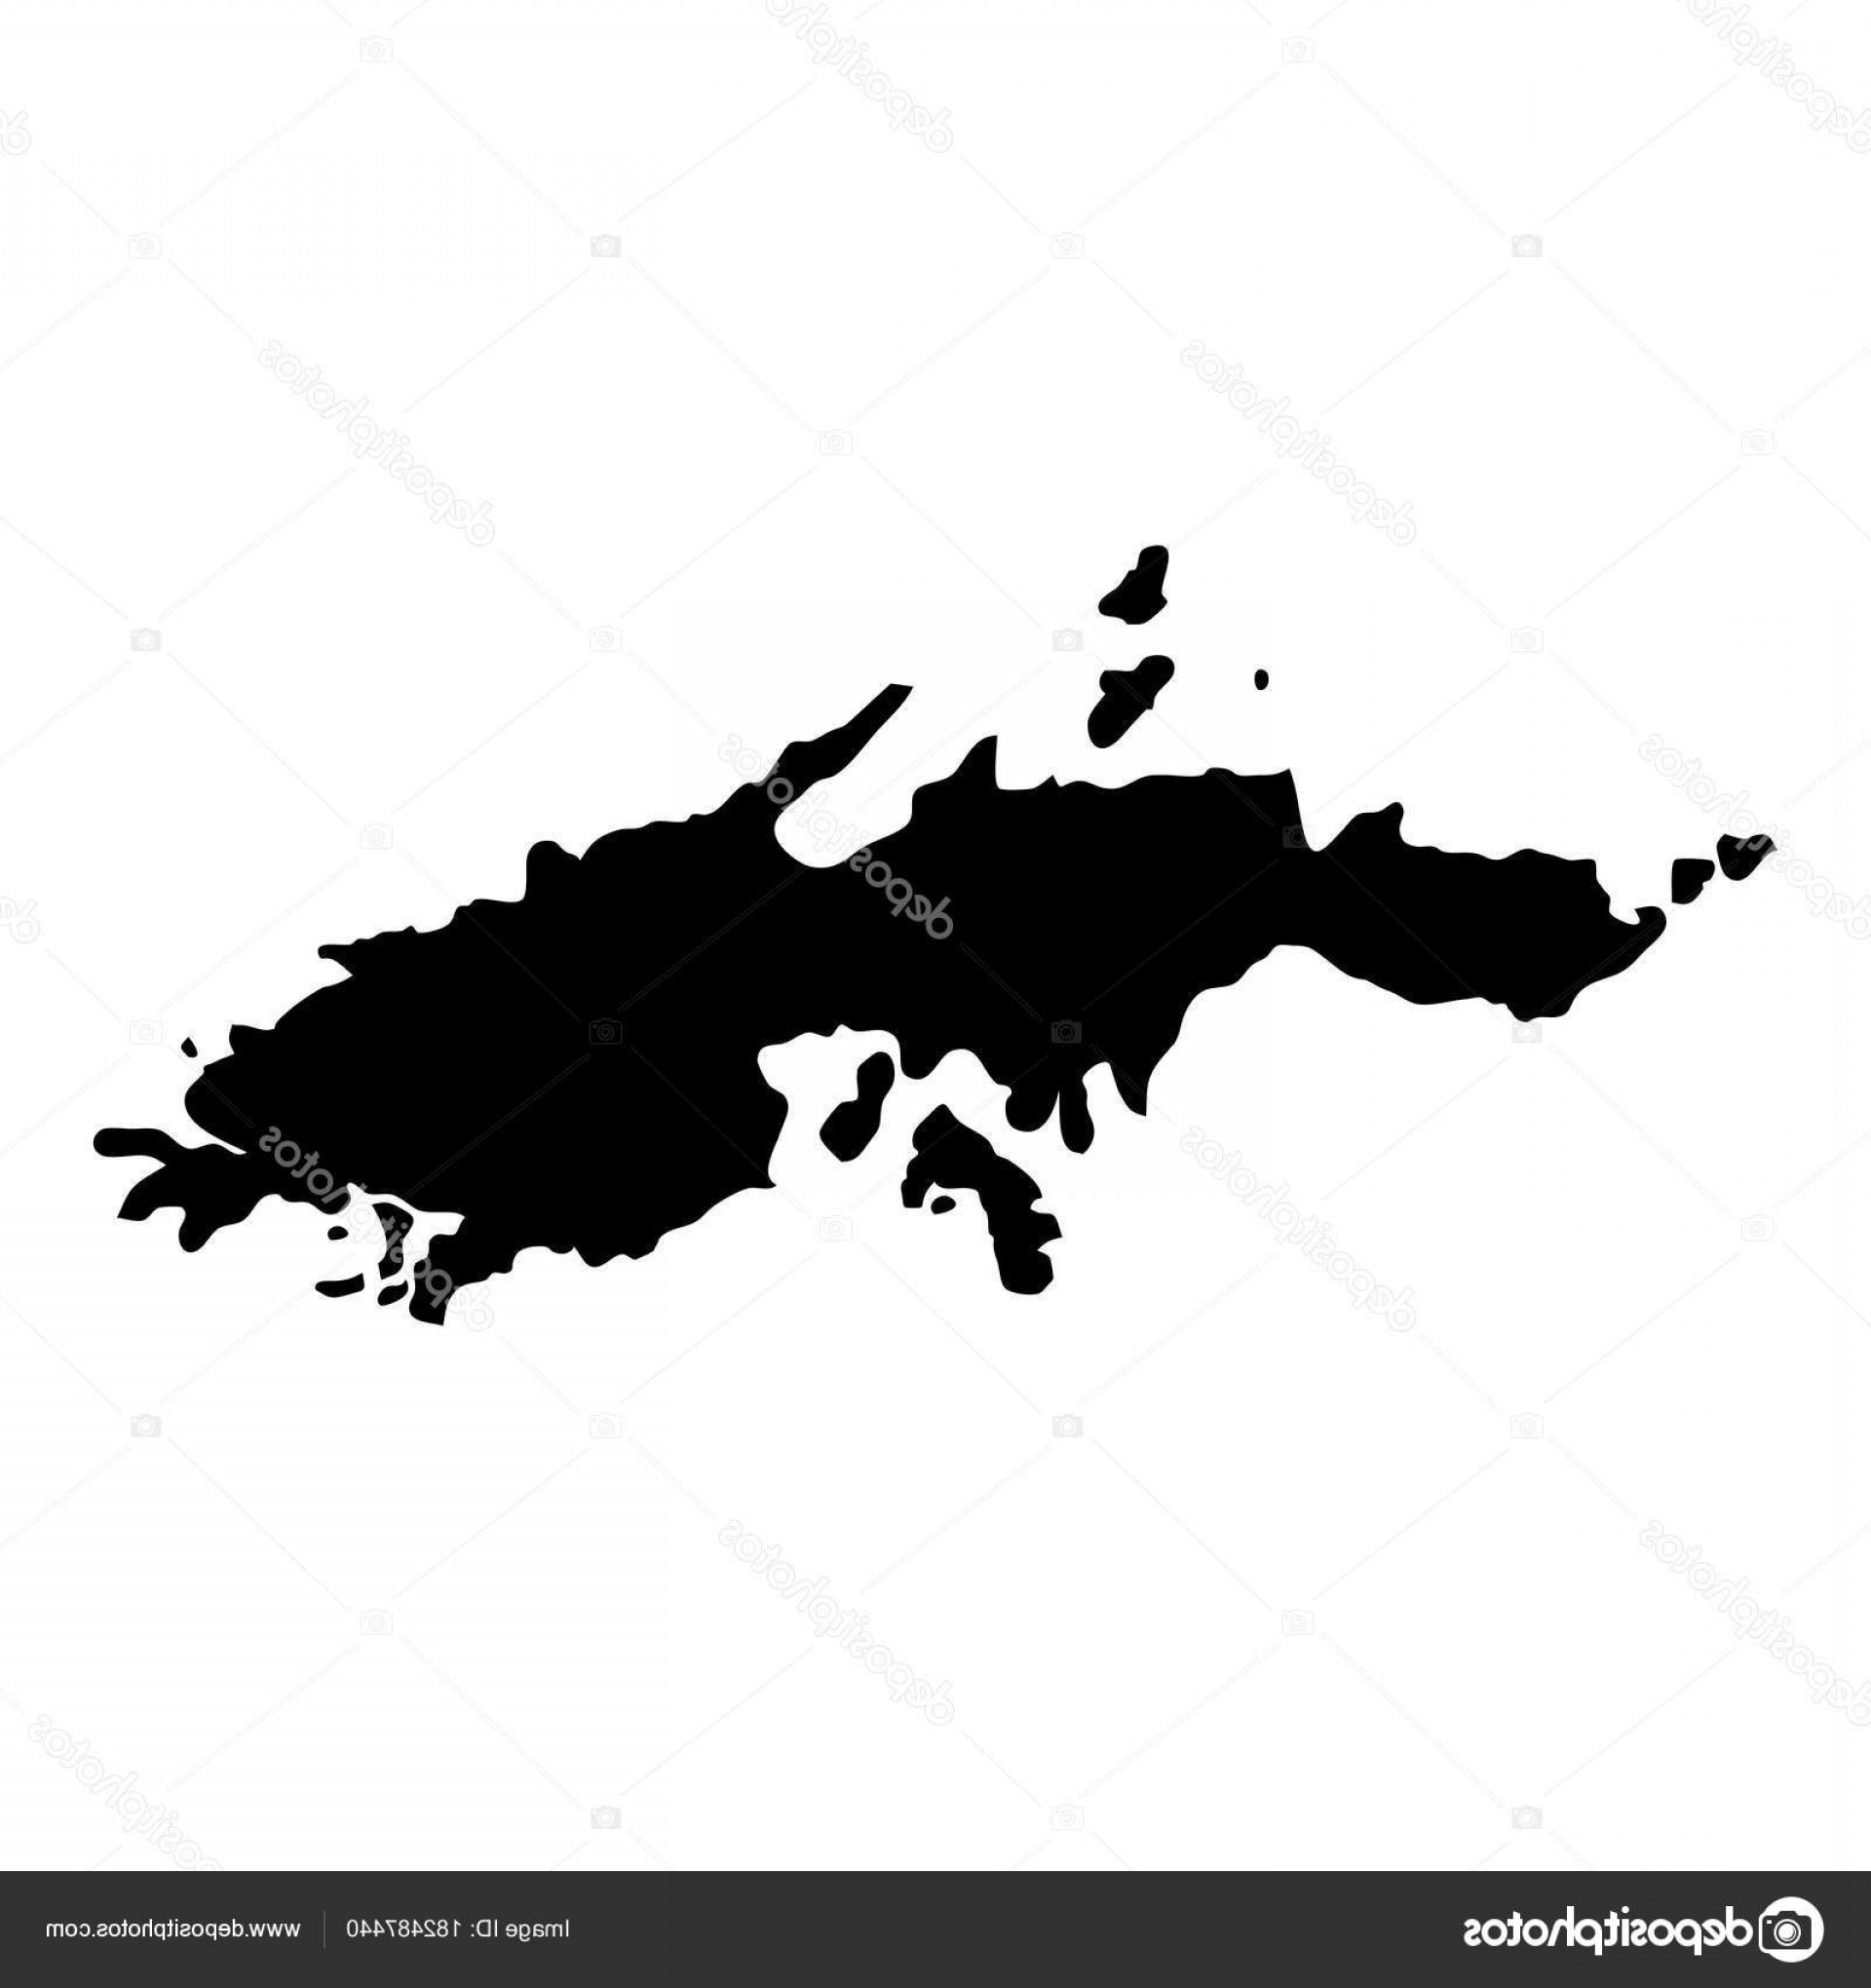 Thomas And Thomas Vector: Stock Illustration Saint Thomas Map Island Silhouette